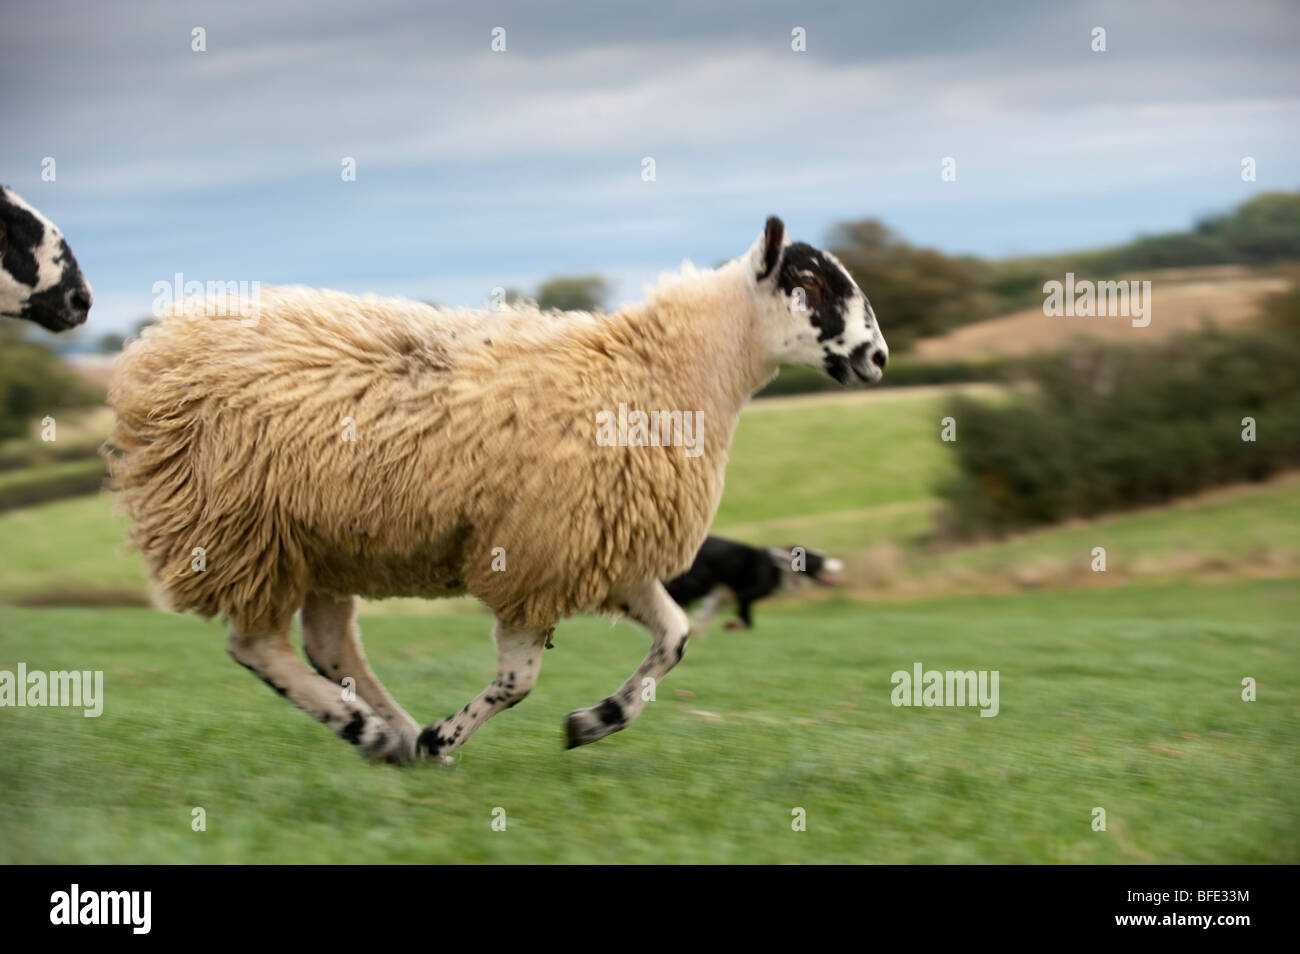 Mule gimmer lambs running with collie dog chasing it. - Stock Image